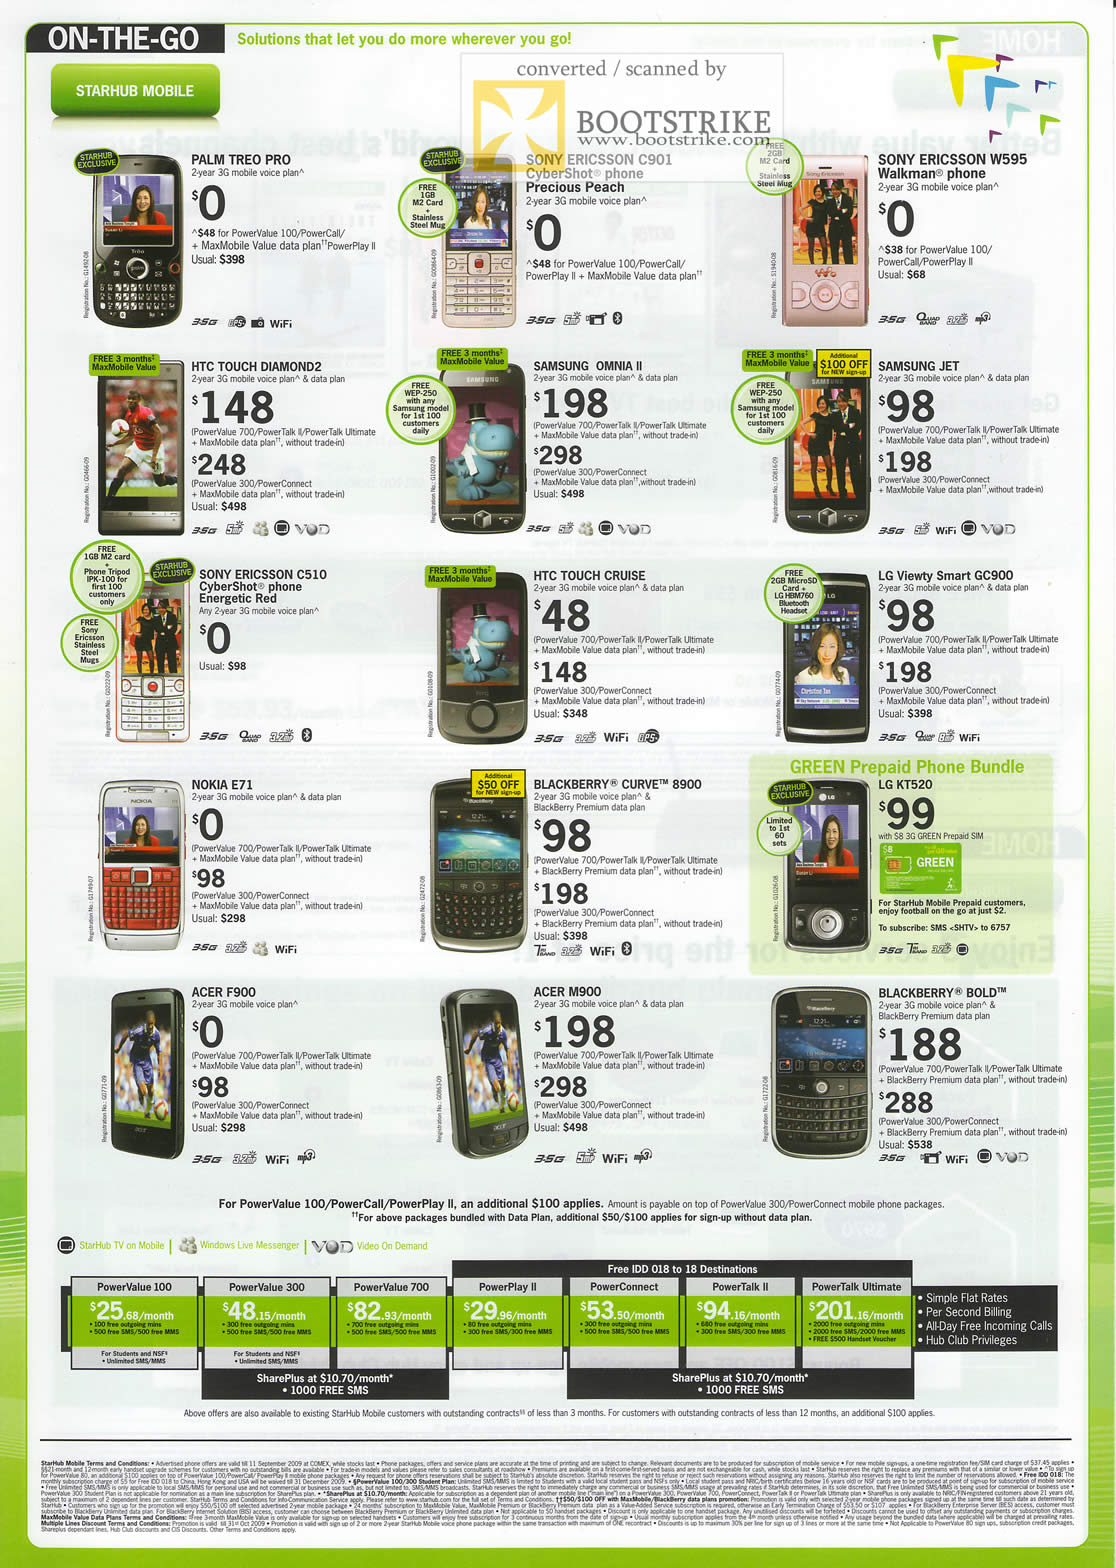 Comex 2009 price list image brochure of Starhub Mobile Phones Palm Treo HTC LG Blackberry Acer Plans